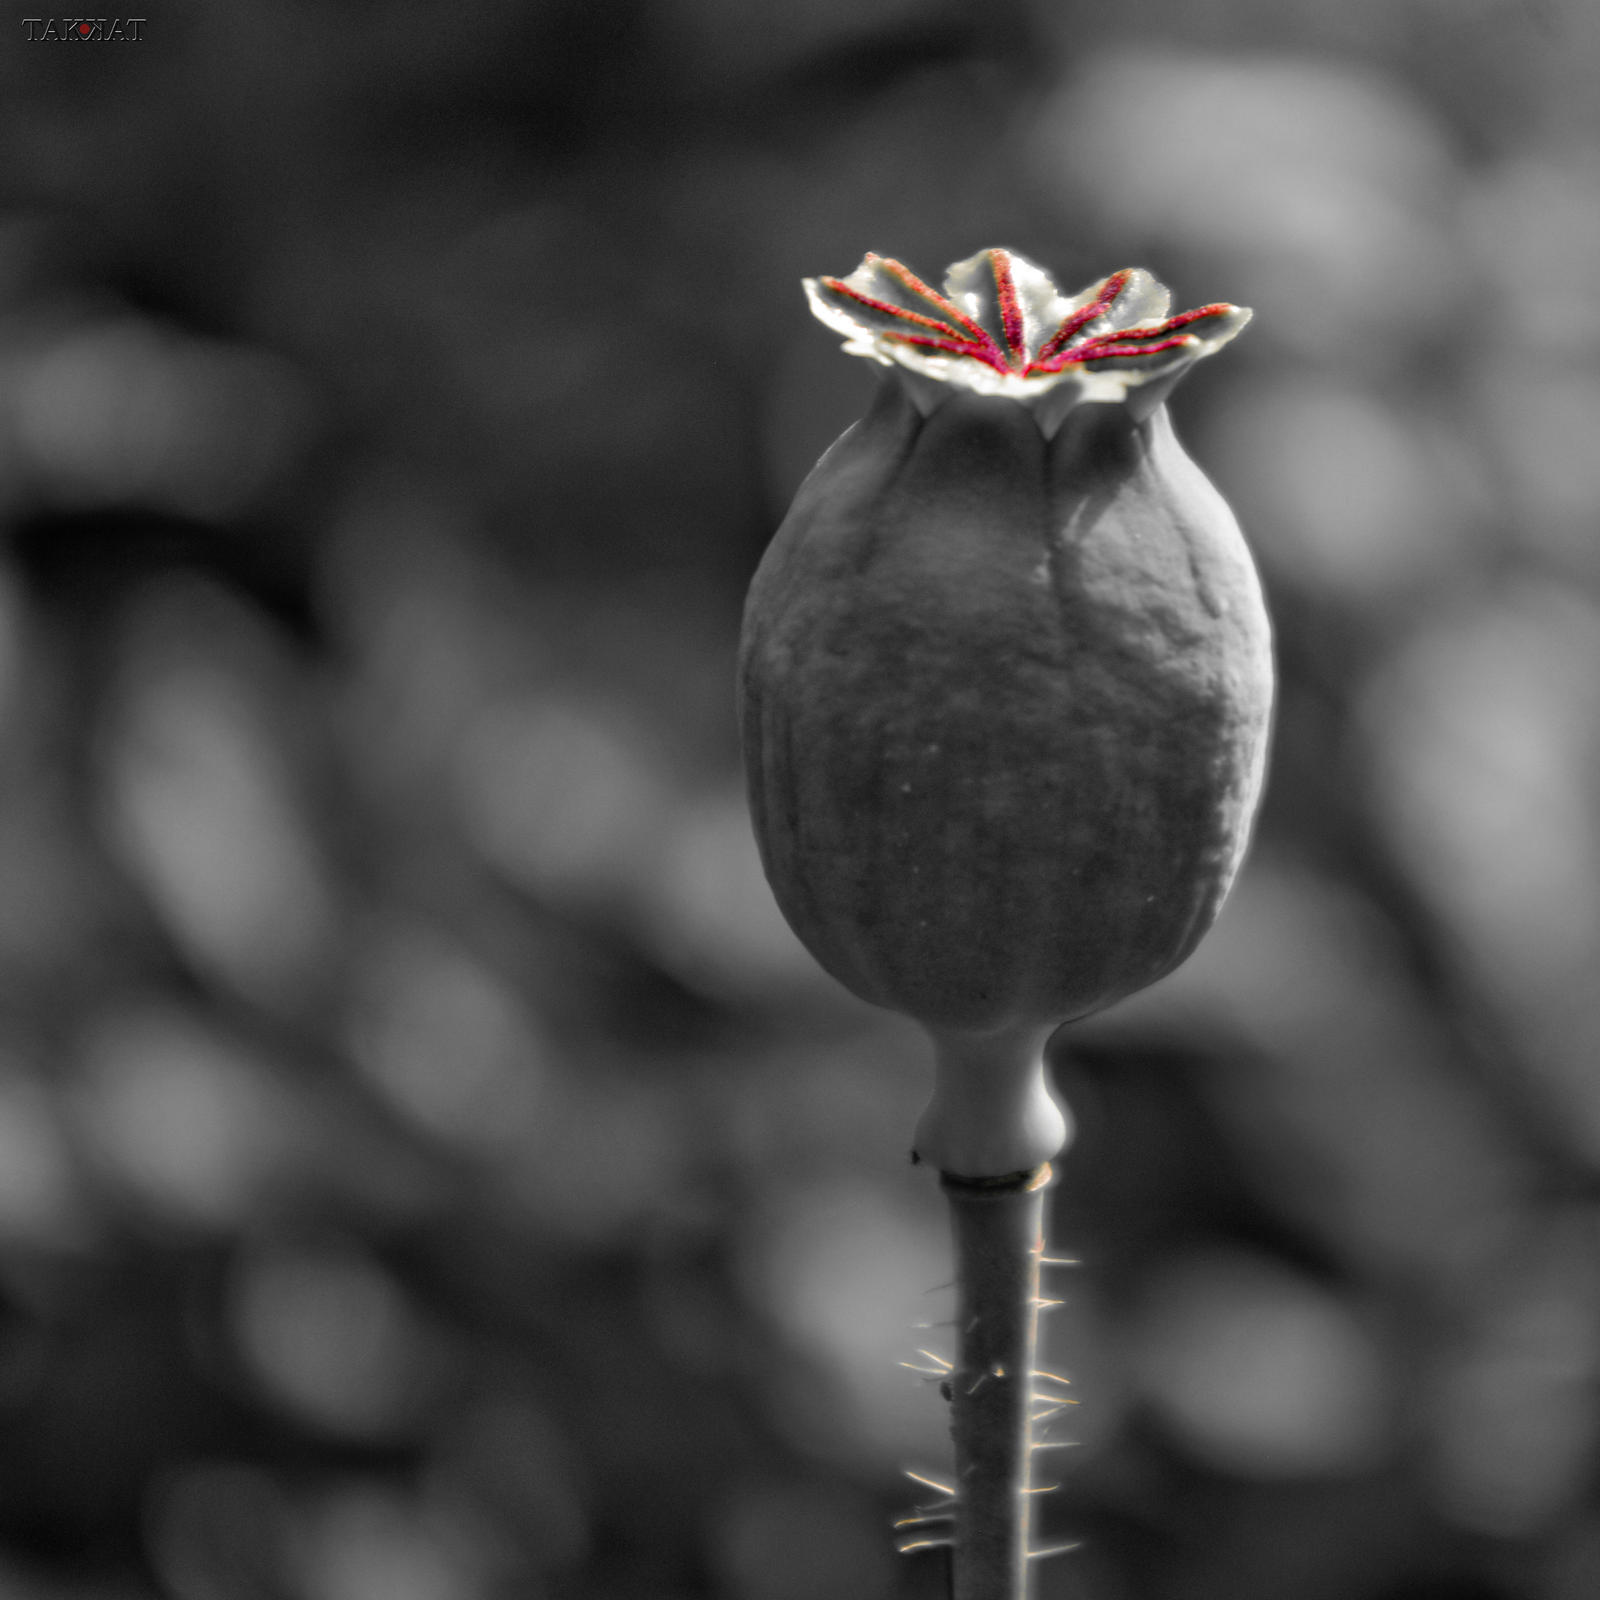 Poppy Seed Pod By Tak Kat On Deviantart